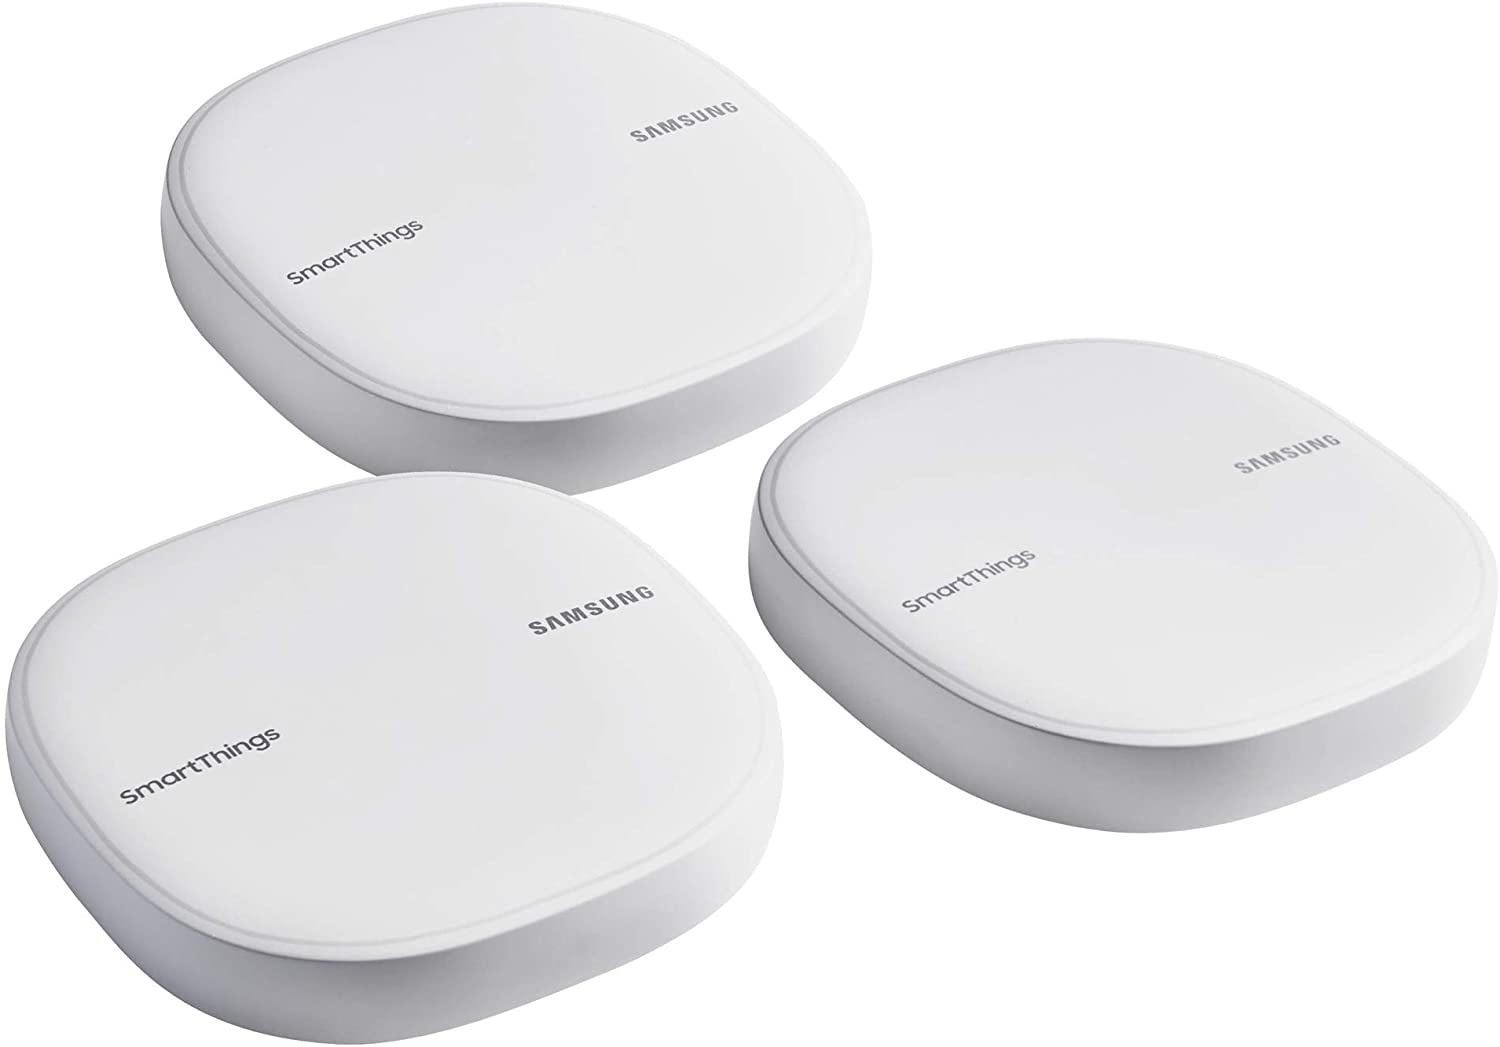 Samsung SmartThings Wi-Fi